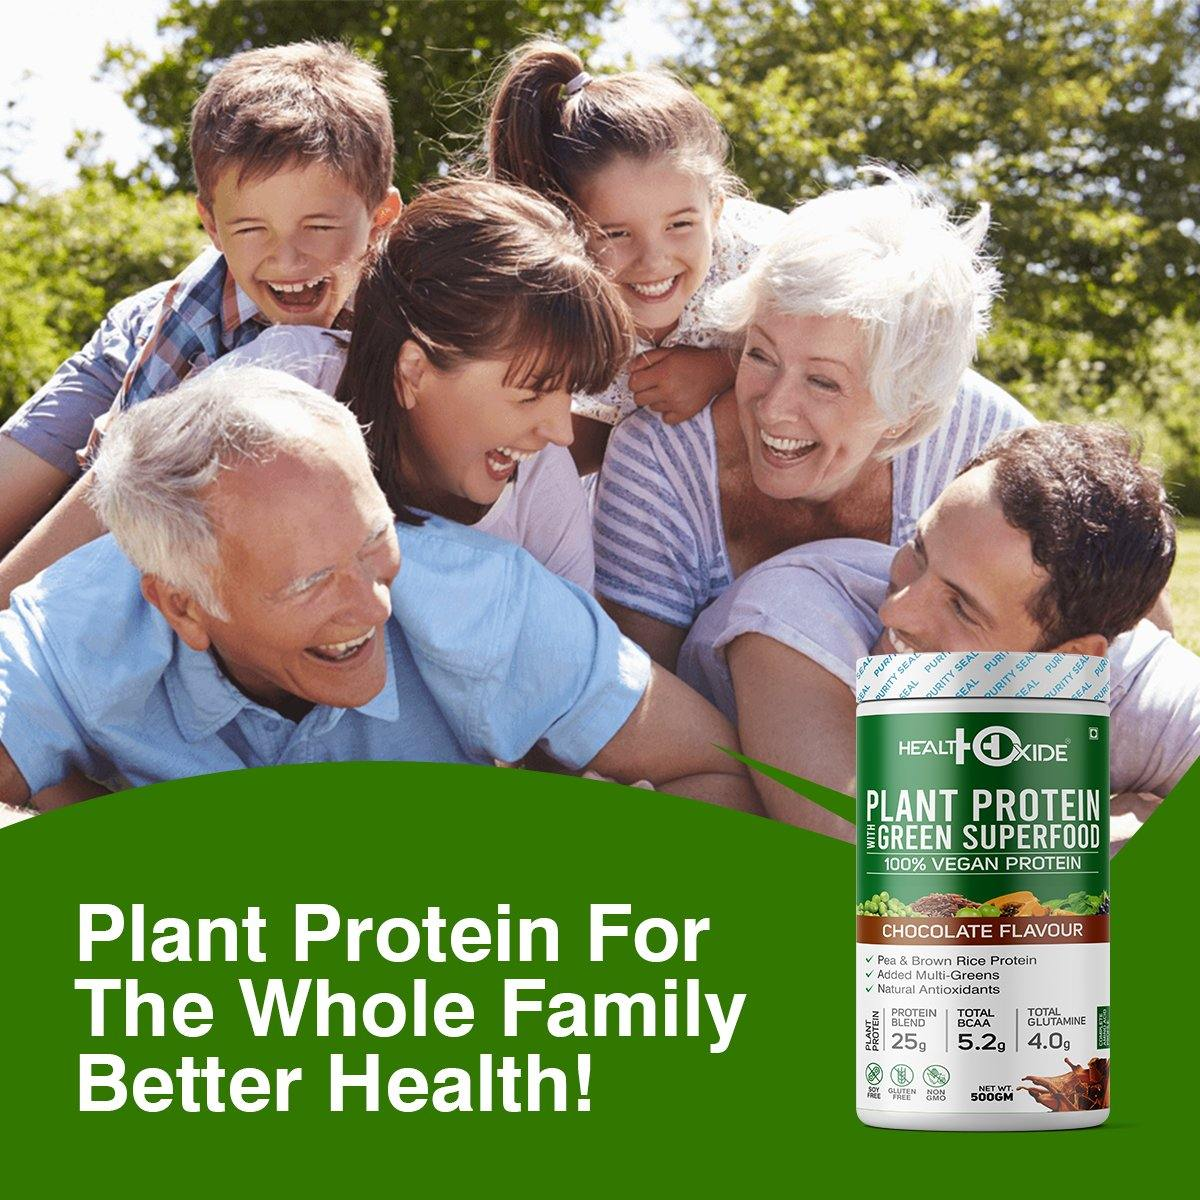 Vegan Plant Protein, Herbs, Antioxidants, Digestive Enzymes (Natural Chocolate flavor)